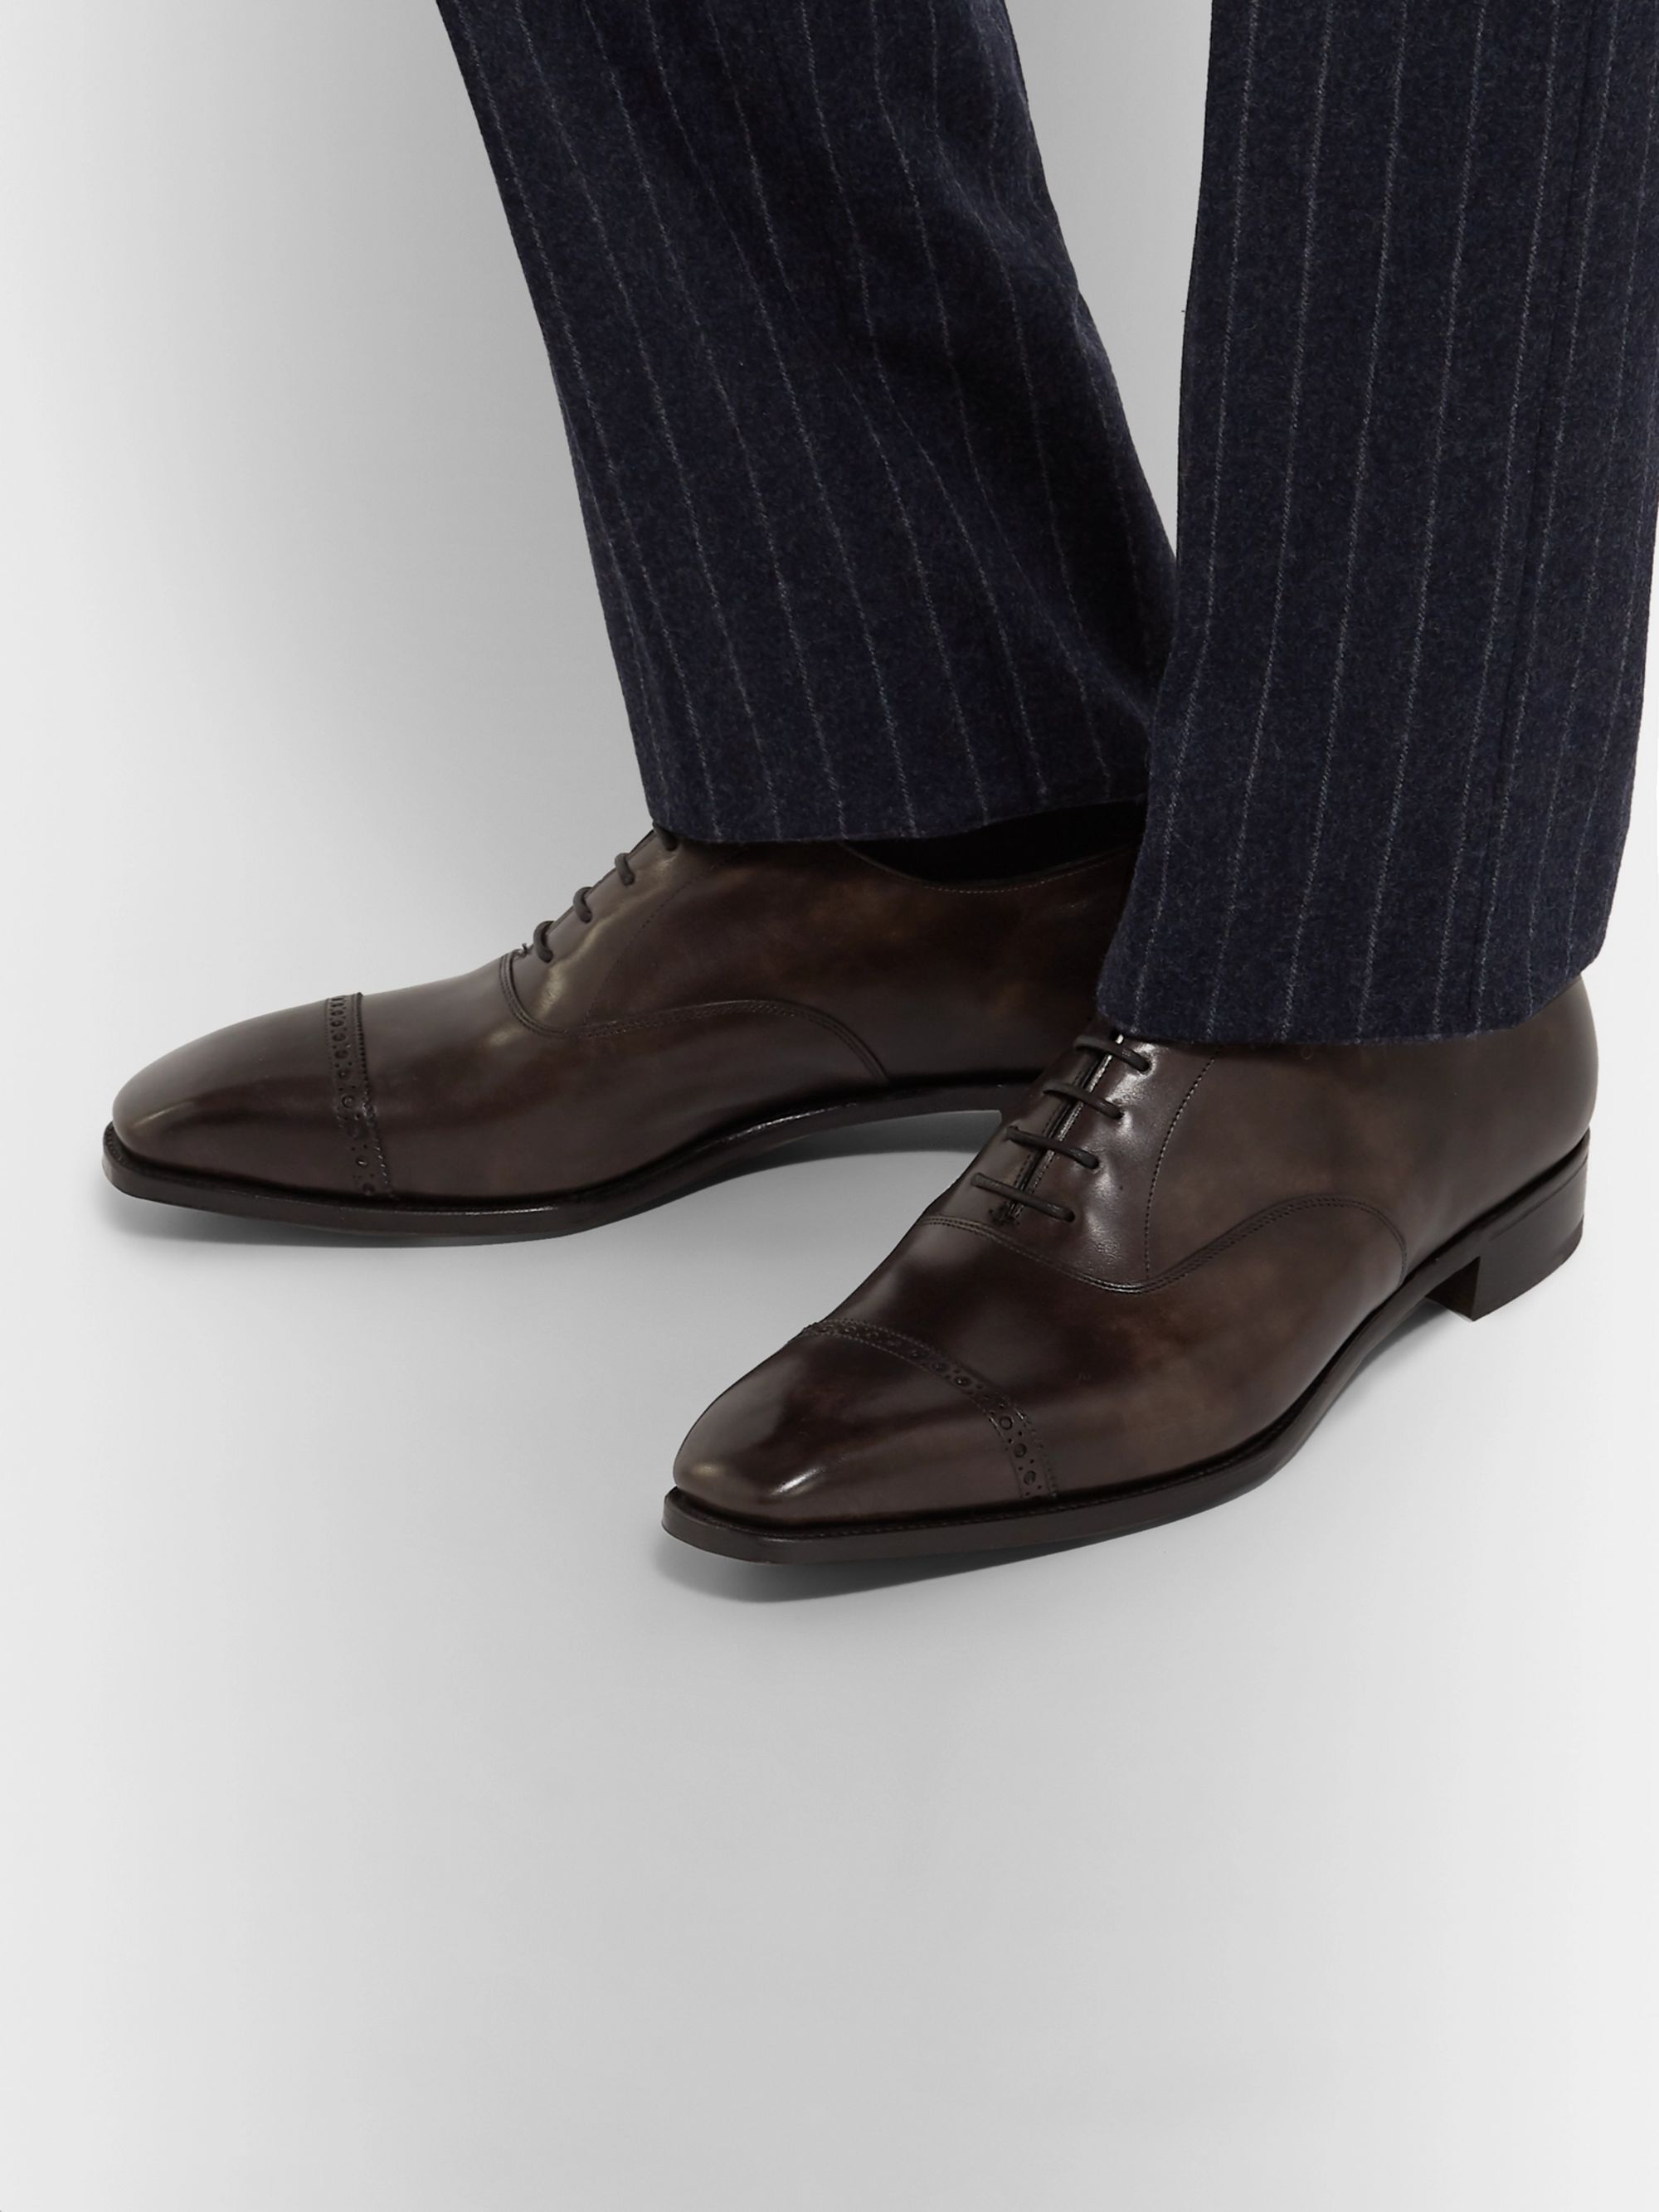 George Cleverley Nakagawa Burnished-Leather Oxford Brogues